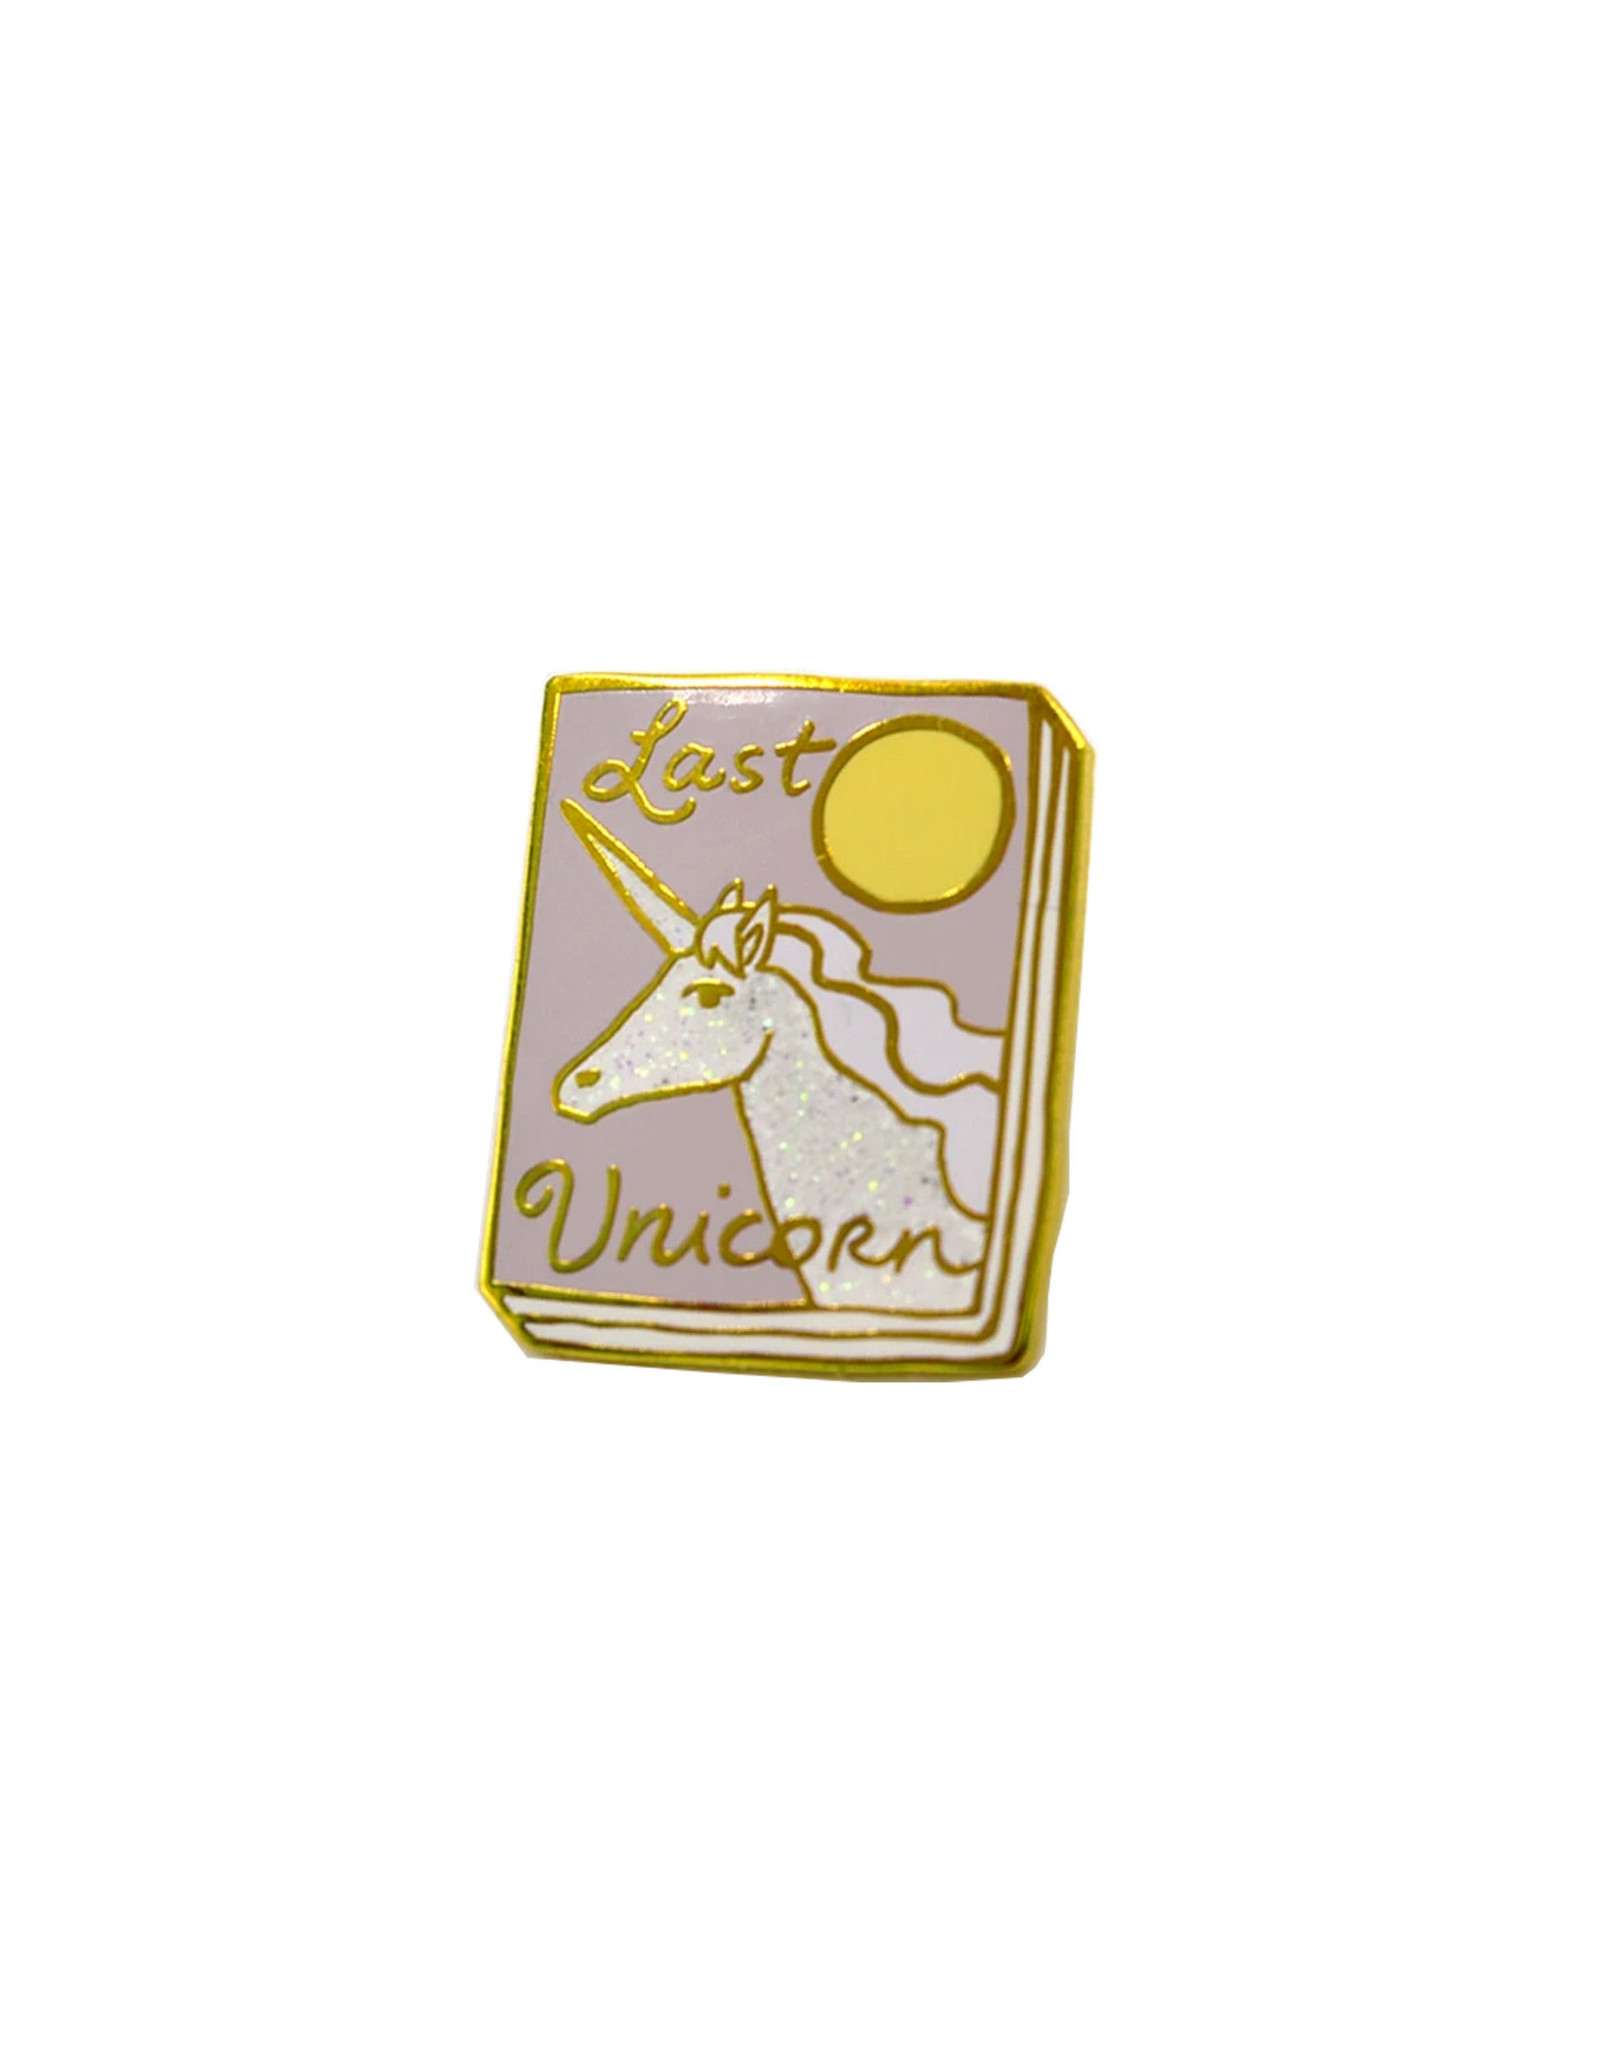 Ideal Bookshelf Book Pin: The Last Unicorn